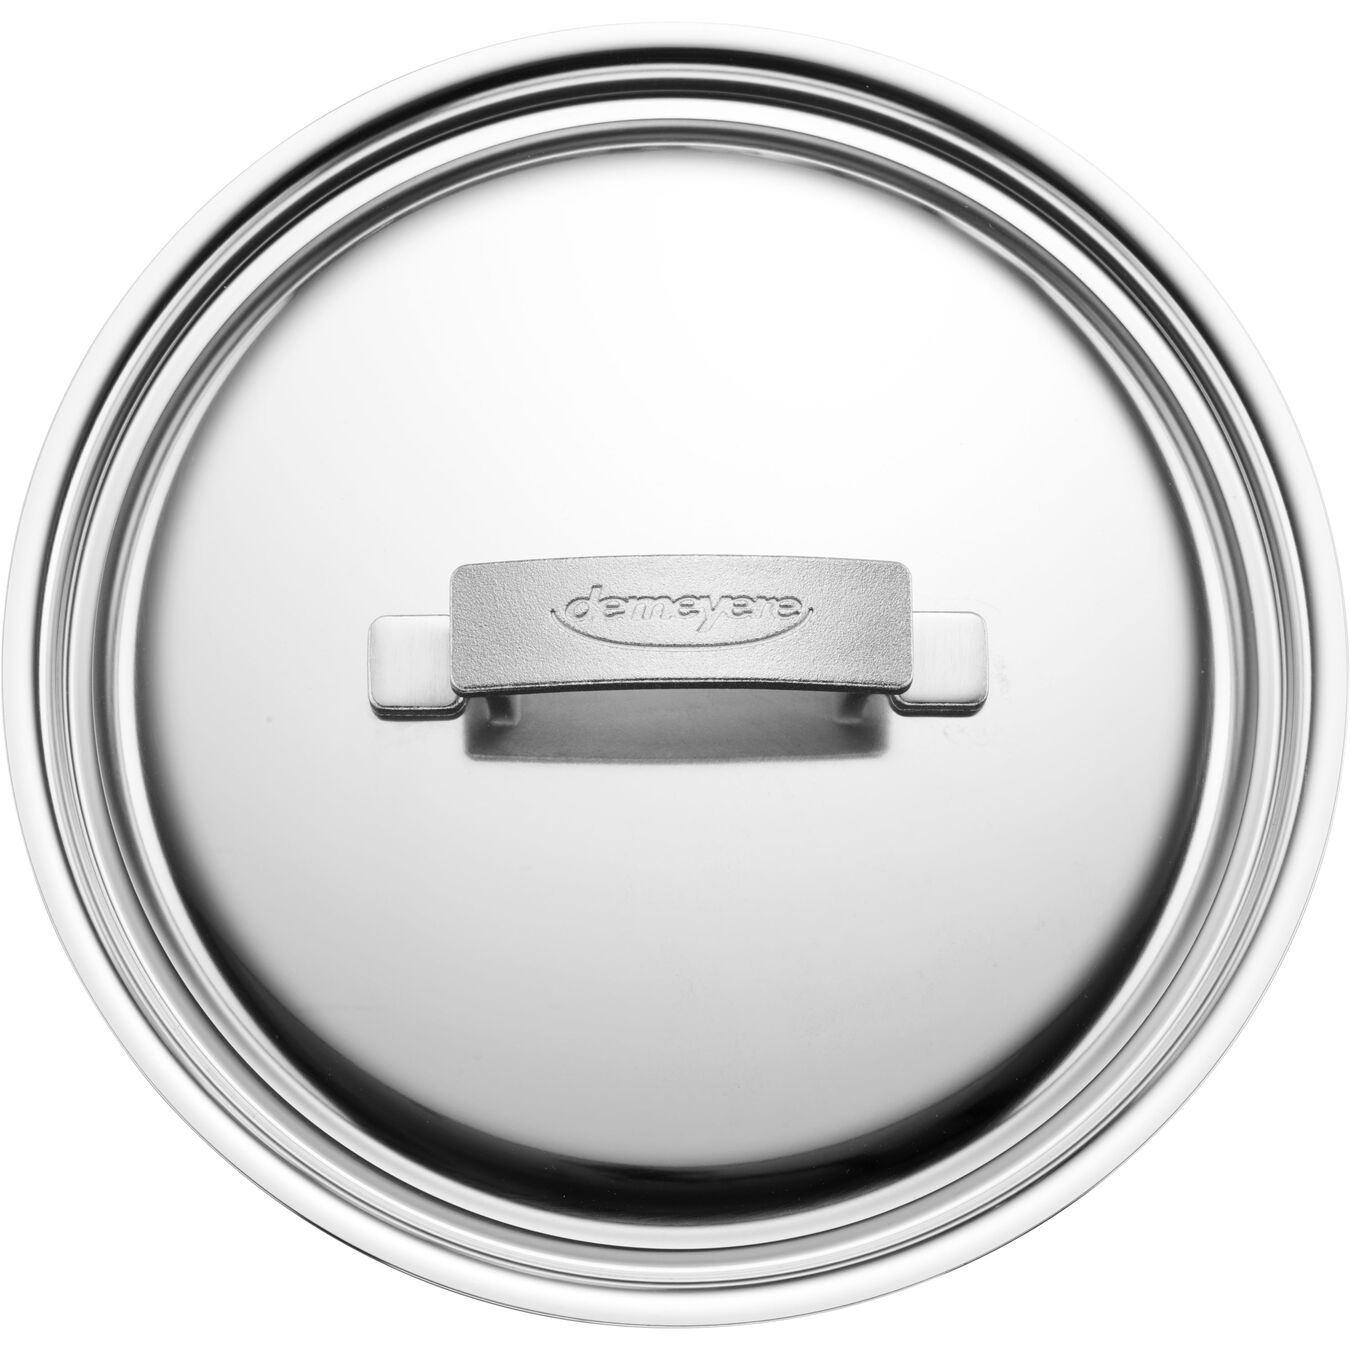 5.5-qt Stainless Steel Dutch Oven,,large 5